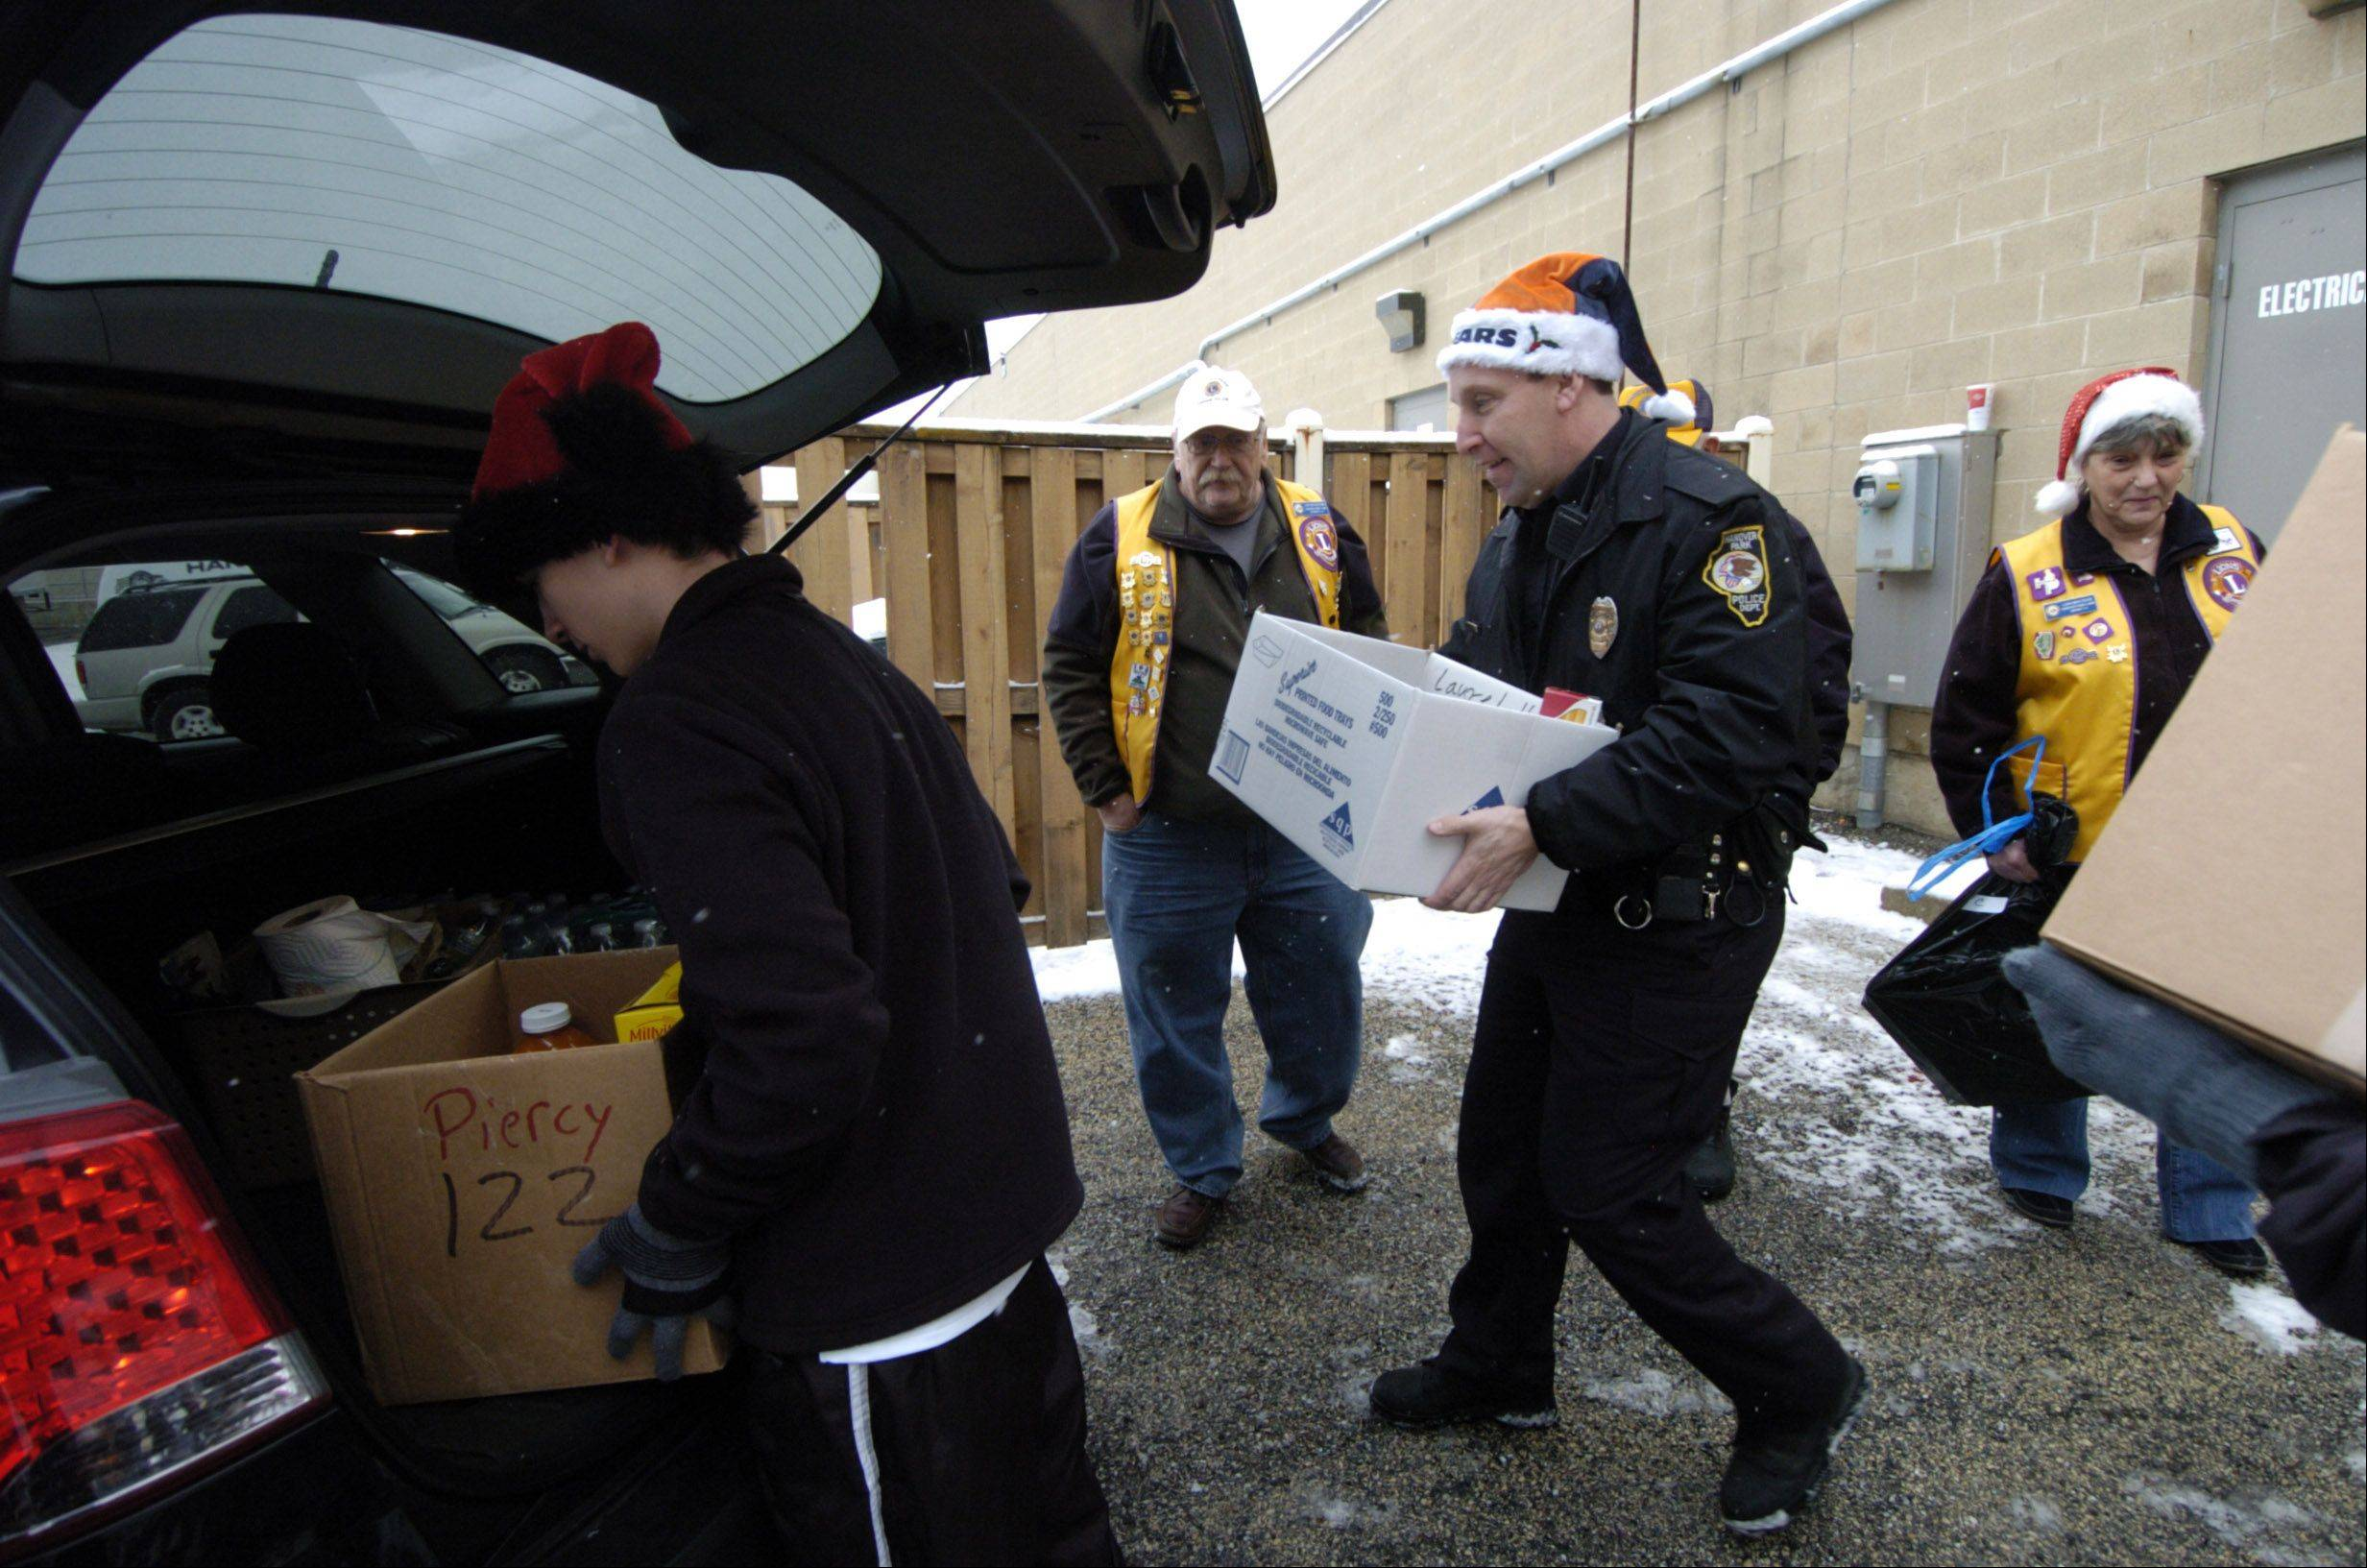 Officer Sullivan, center, helps load boxes of food and presents into a car during the Christmas season. The Hanover Park Lions Club, in cooperation with the Fraternal Order of Police, distributes food and Christmas presents to needy families.